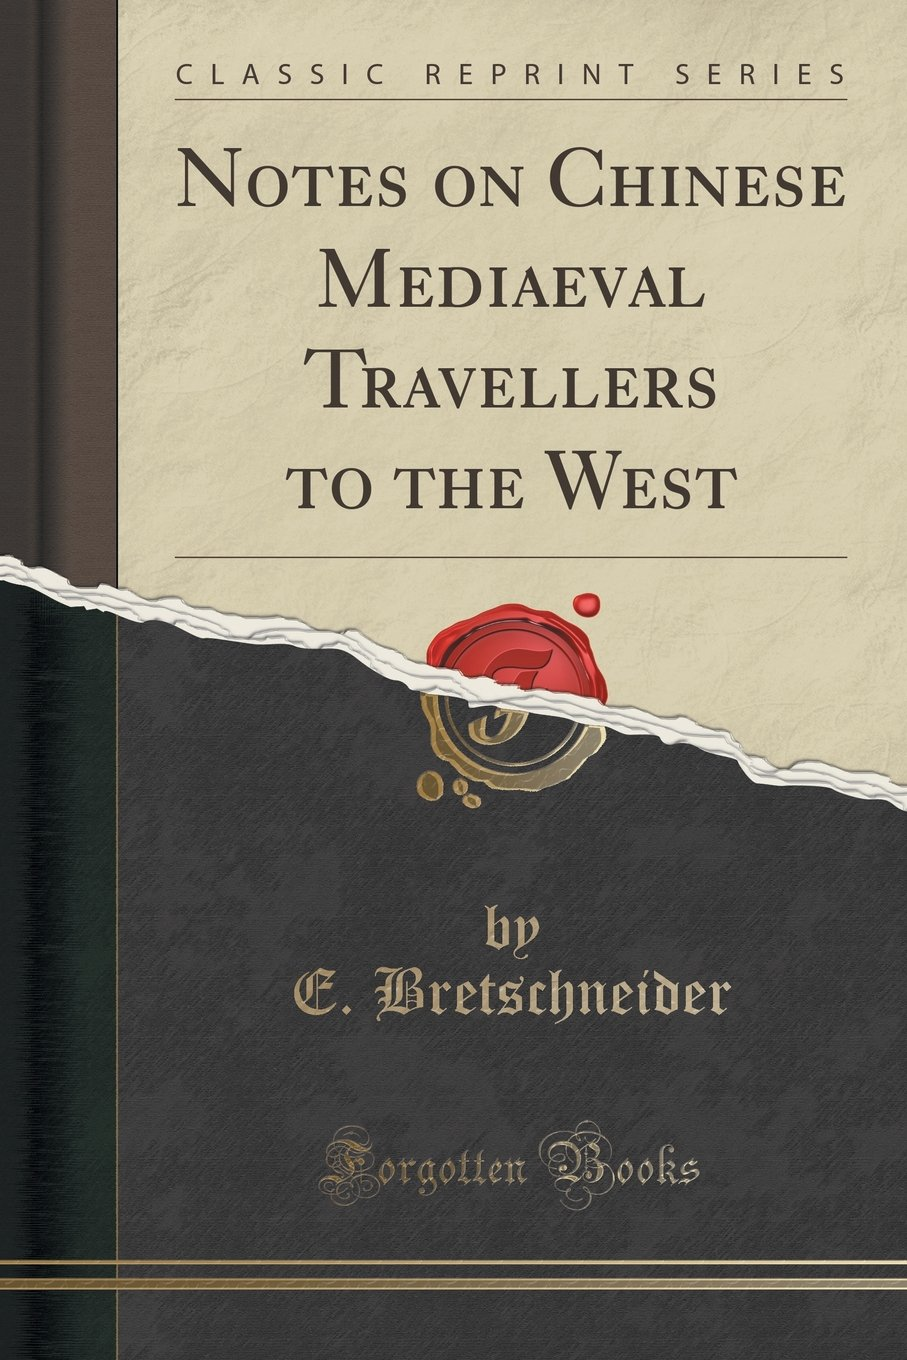 notes-on-chinese-mediaeval-travellers-to-the-west-classic-reprint